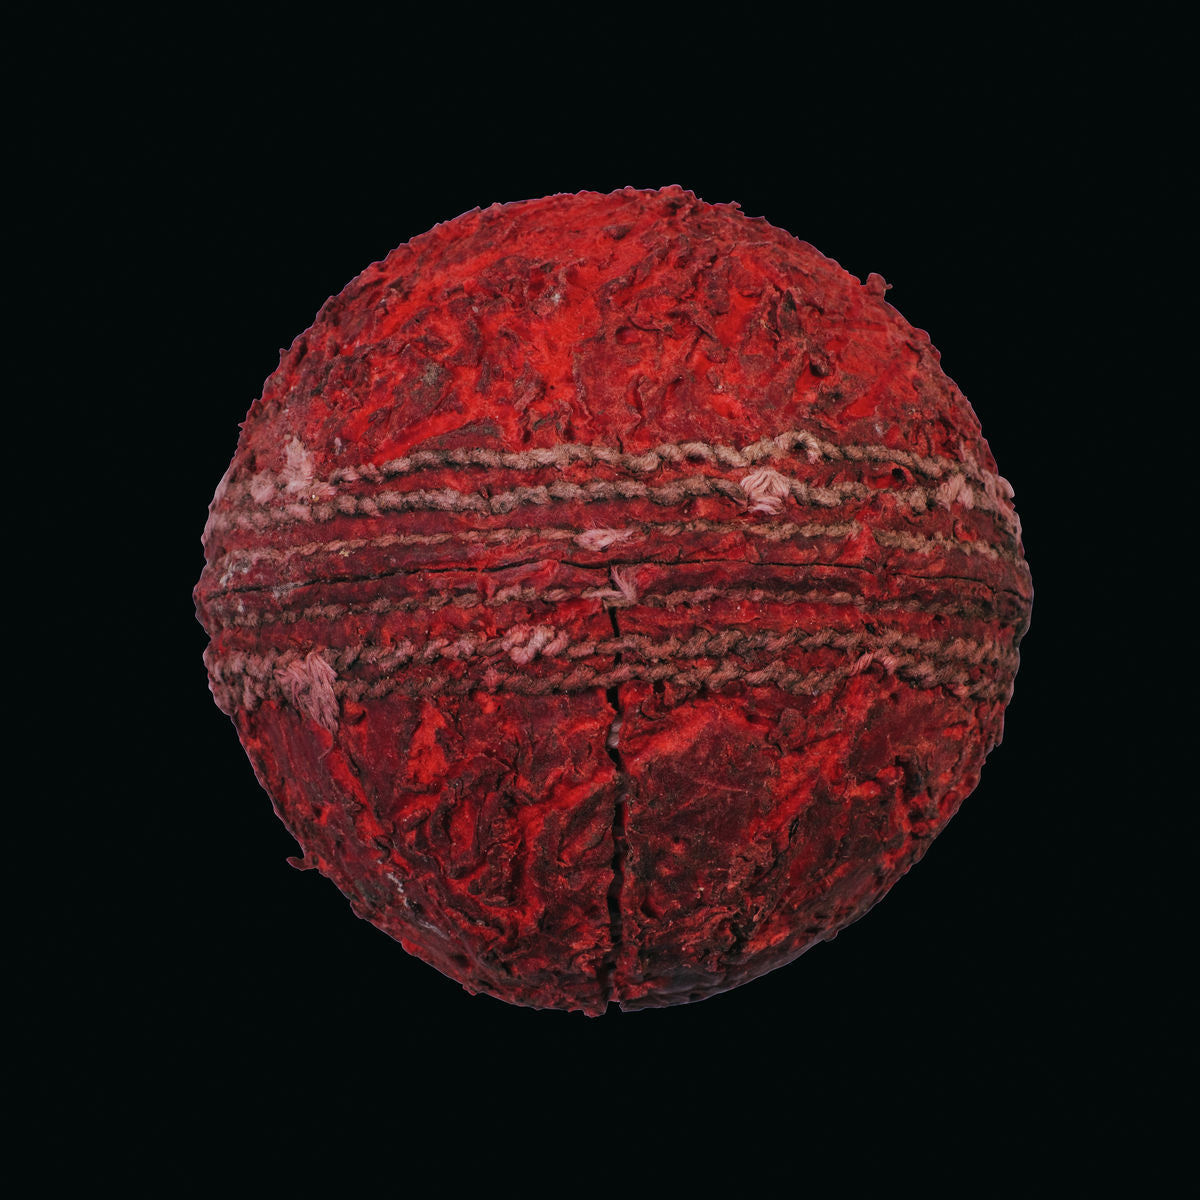 Red cricket ball on black background print